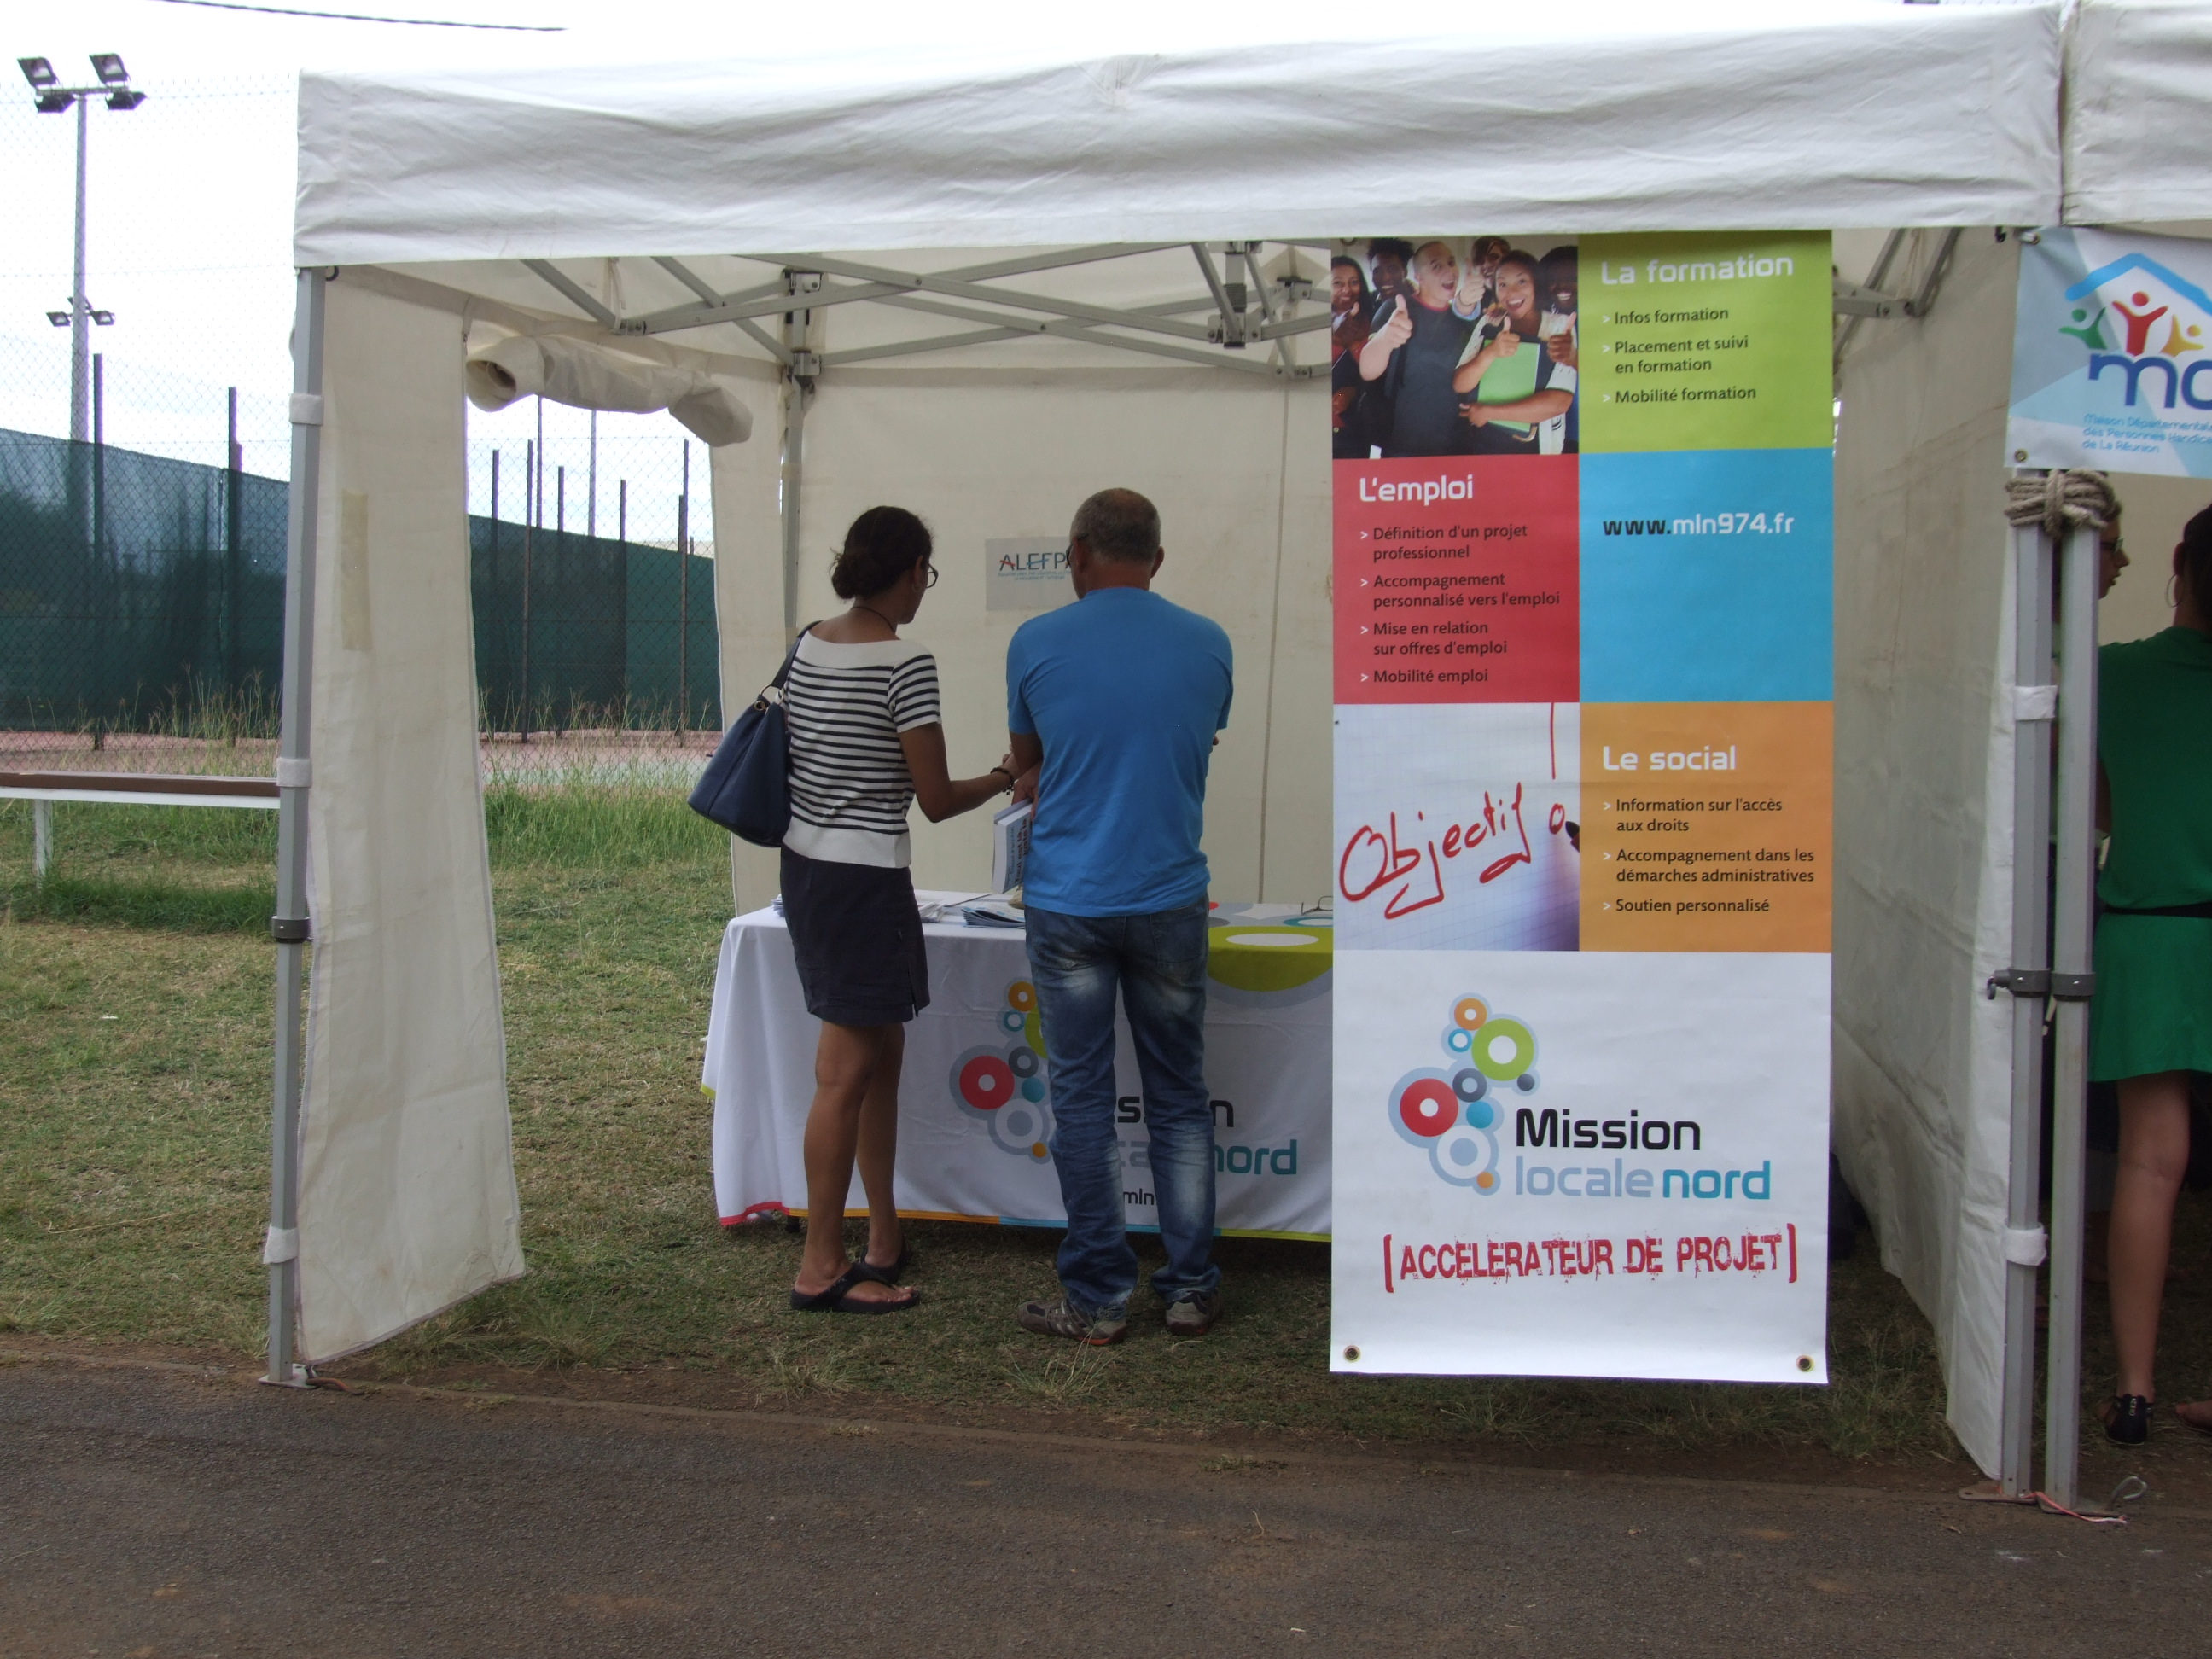 Photo Journee Nationale des Dys 2015 - 17 - Stand Mission Locale Nord.JPG